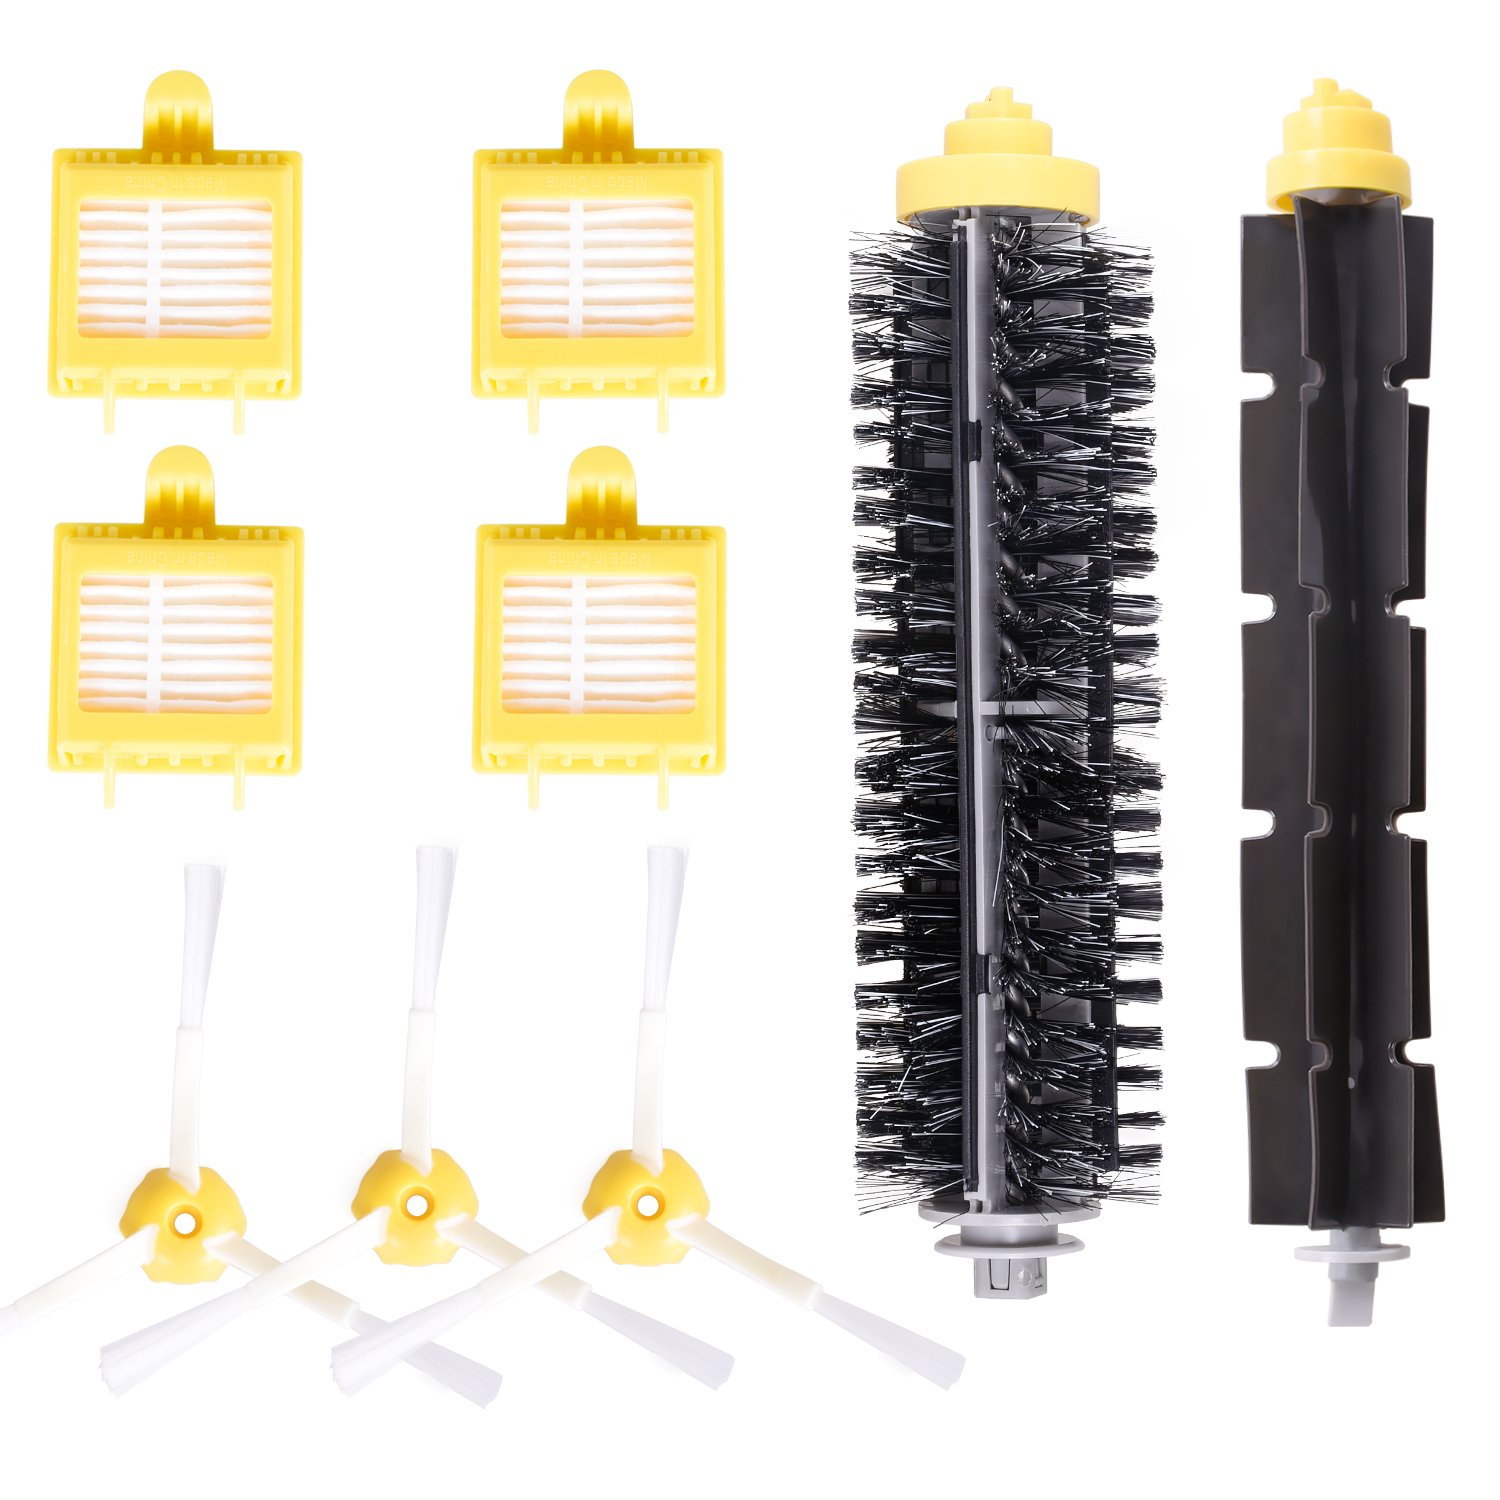 Accessory for iRobot 700 Series 720 750 760 765 770 772 772e 774 775 776 776p 782 782e 785 786 786p 790 Roomba 780 Accessories Replacement Kit Replenishment Parts Set Filter Side Brush Roller